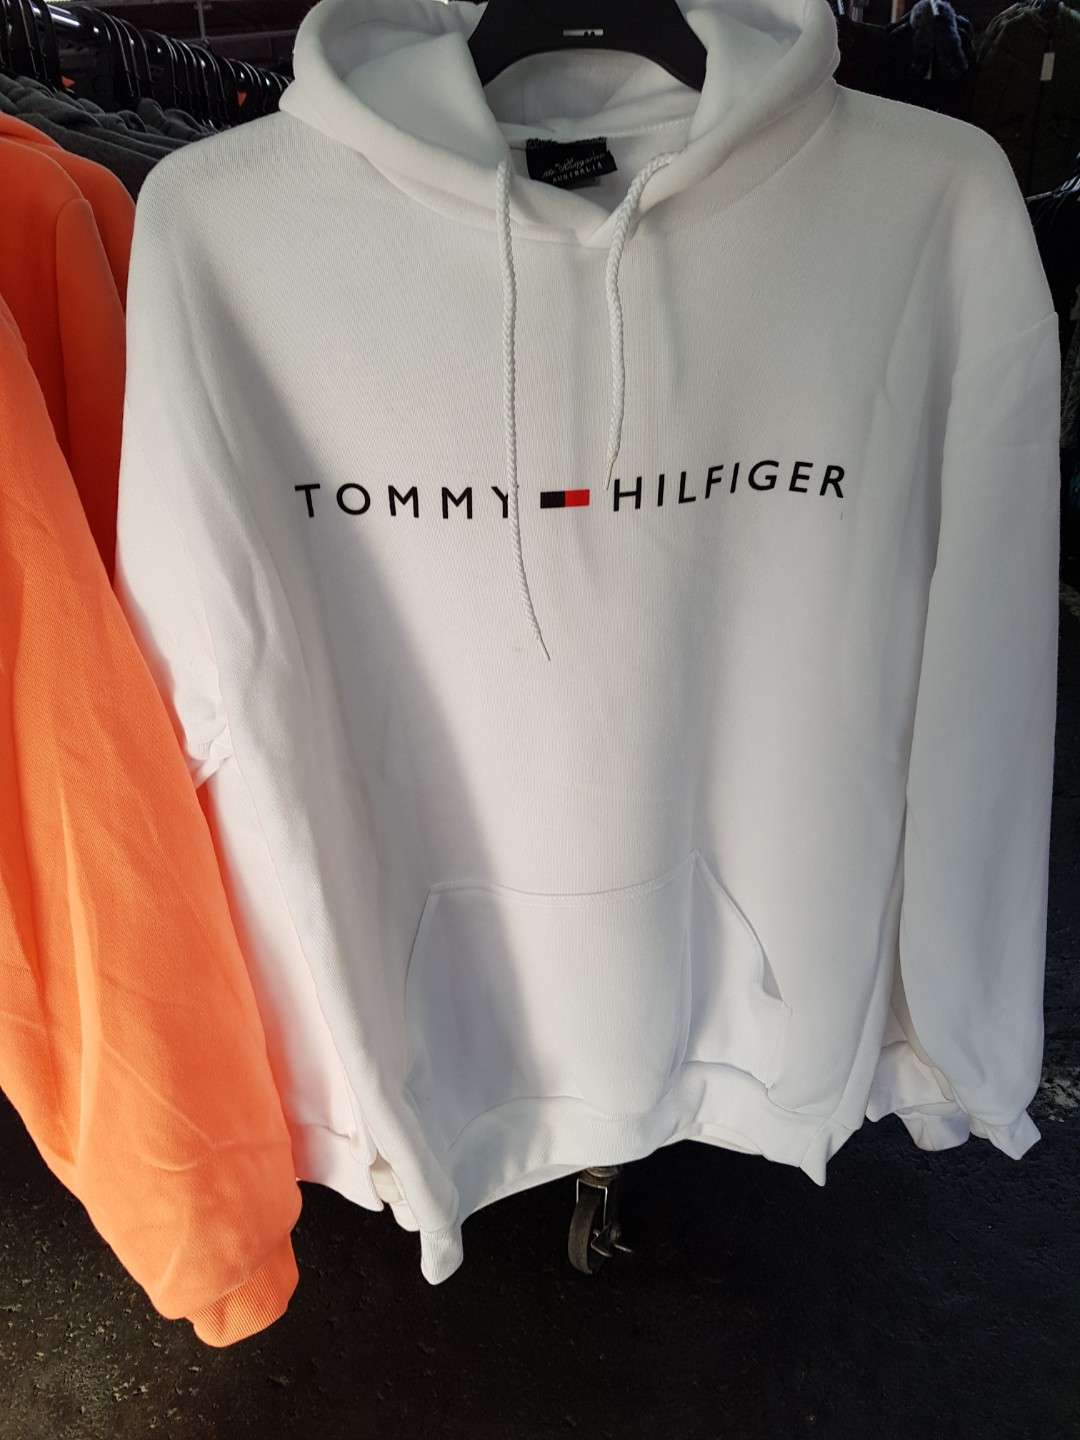 Replica high quality TOMMY hoodie